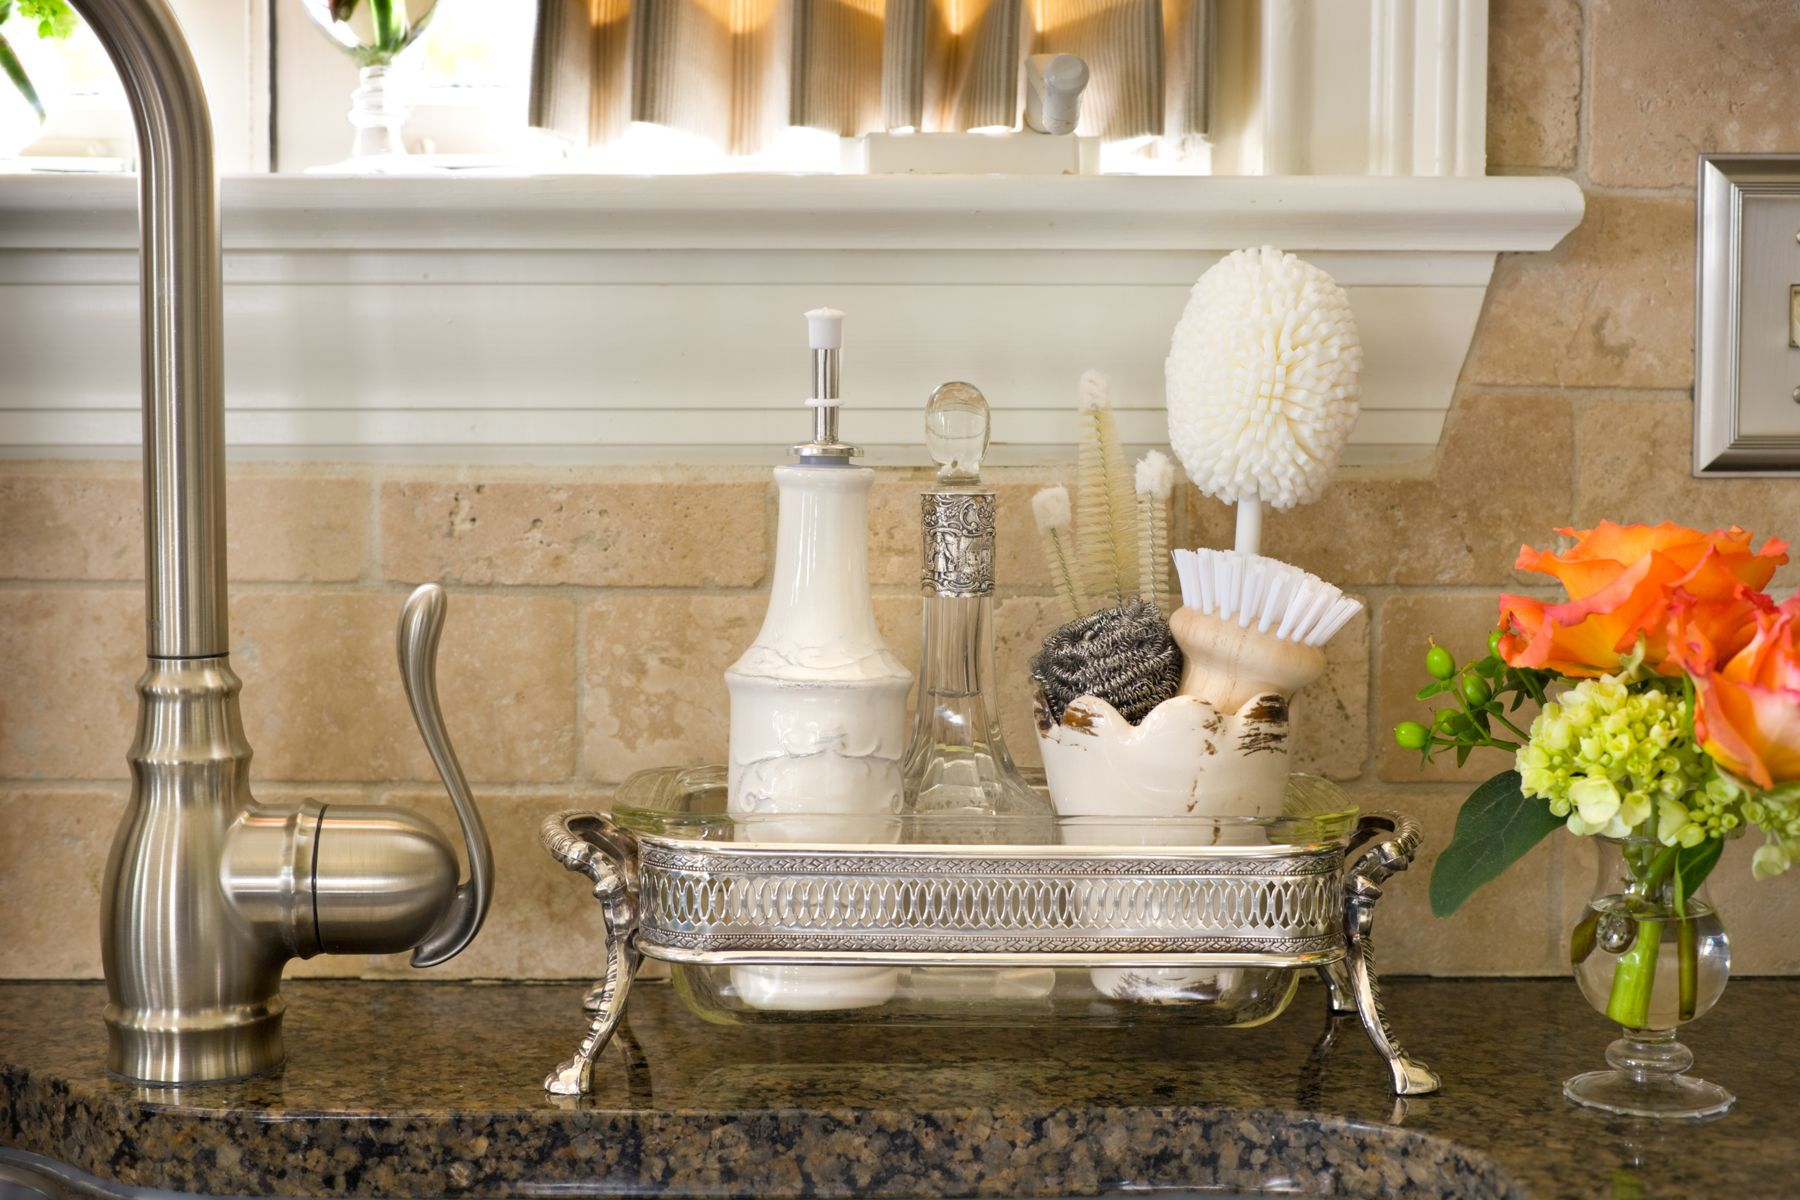 5 Spots to Dress up in Your Kitchen Kitchen sink caddy